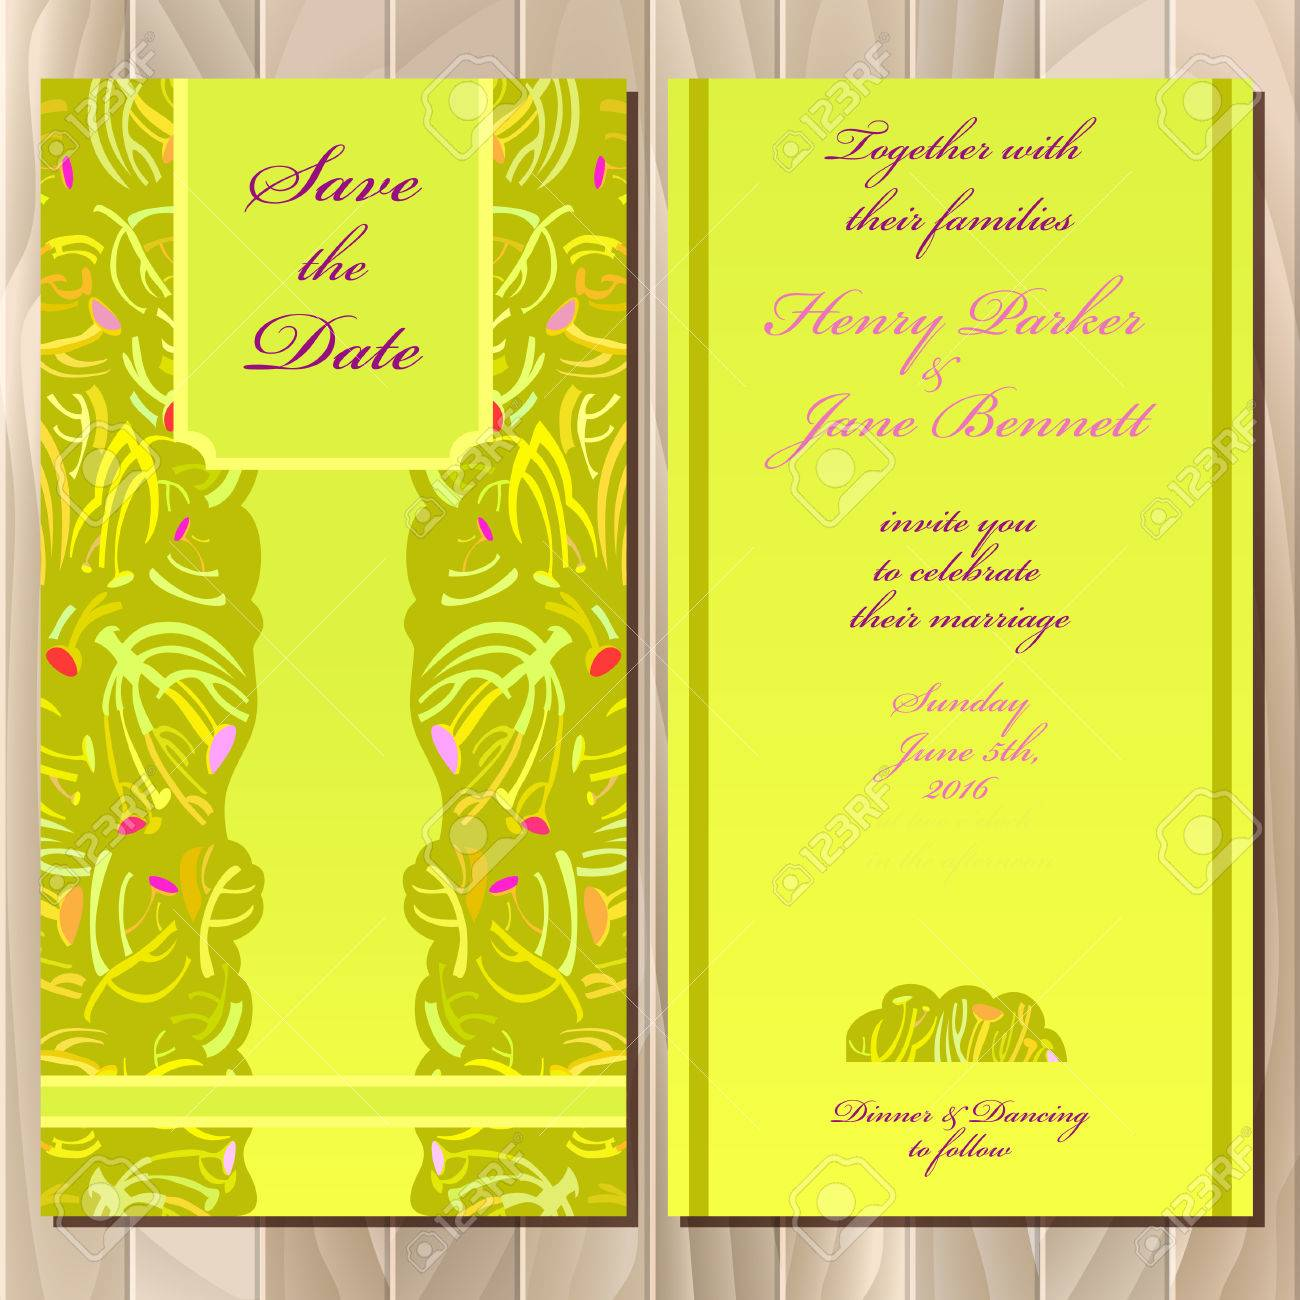 Wedding Invitation Spring Summer Green Yellow Card Design 1300x1300